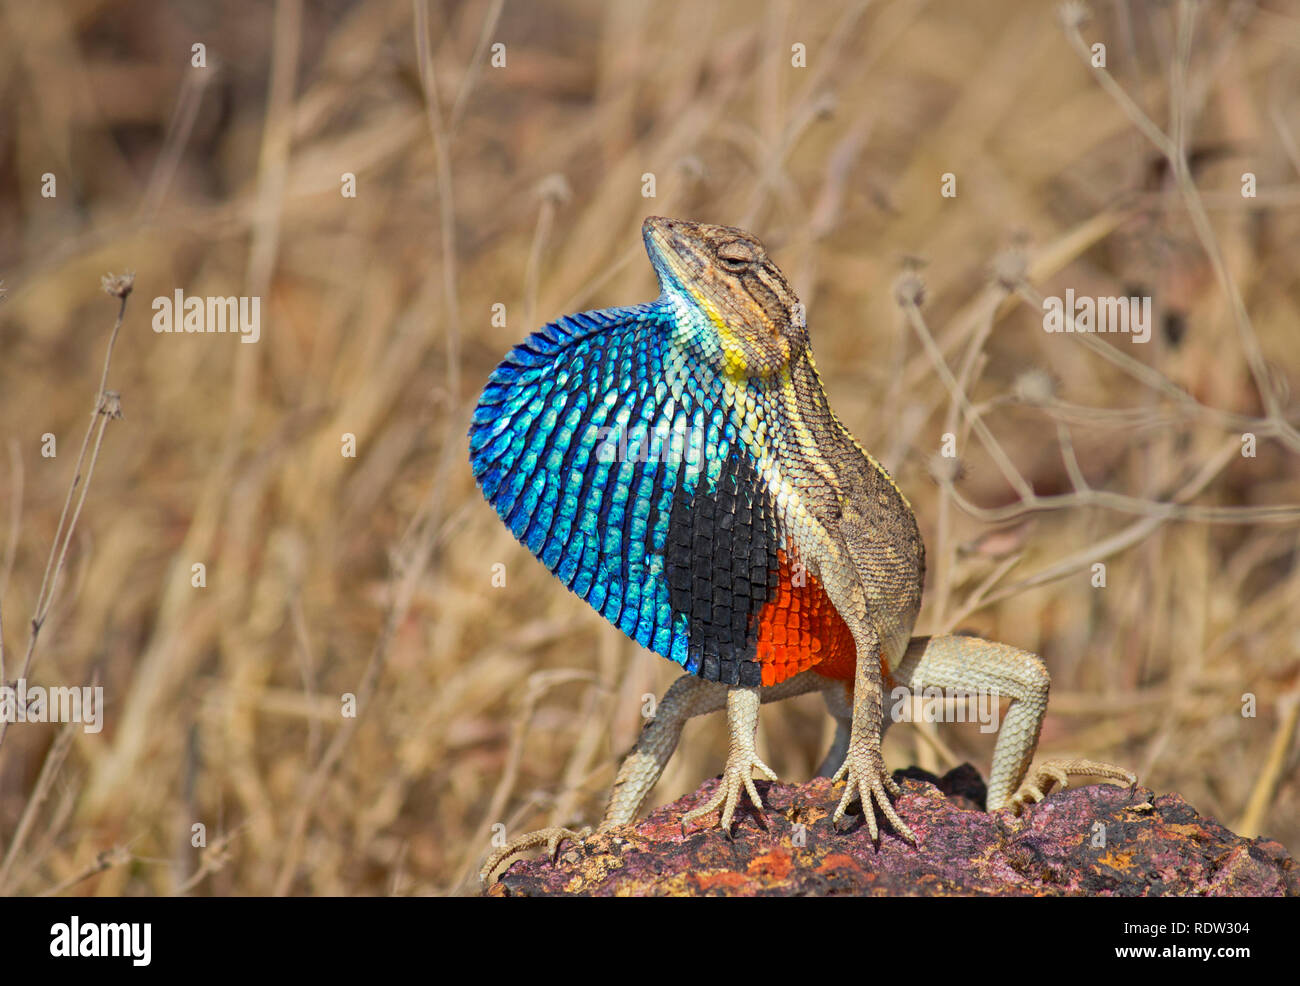 Fan-throated Lizard, Sitana ponticeriana, Satara, Maharashtra, India Stock Photo